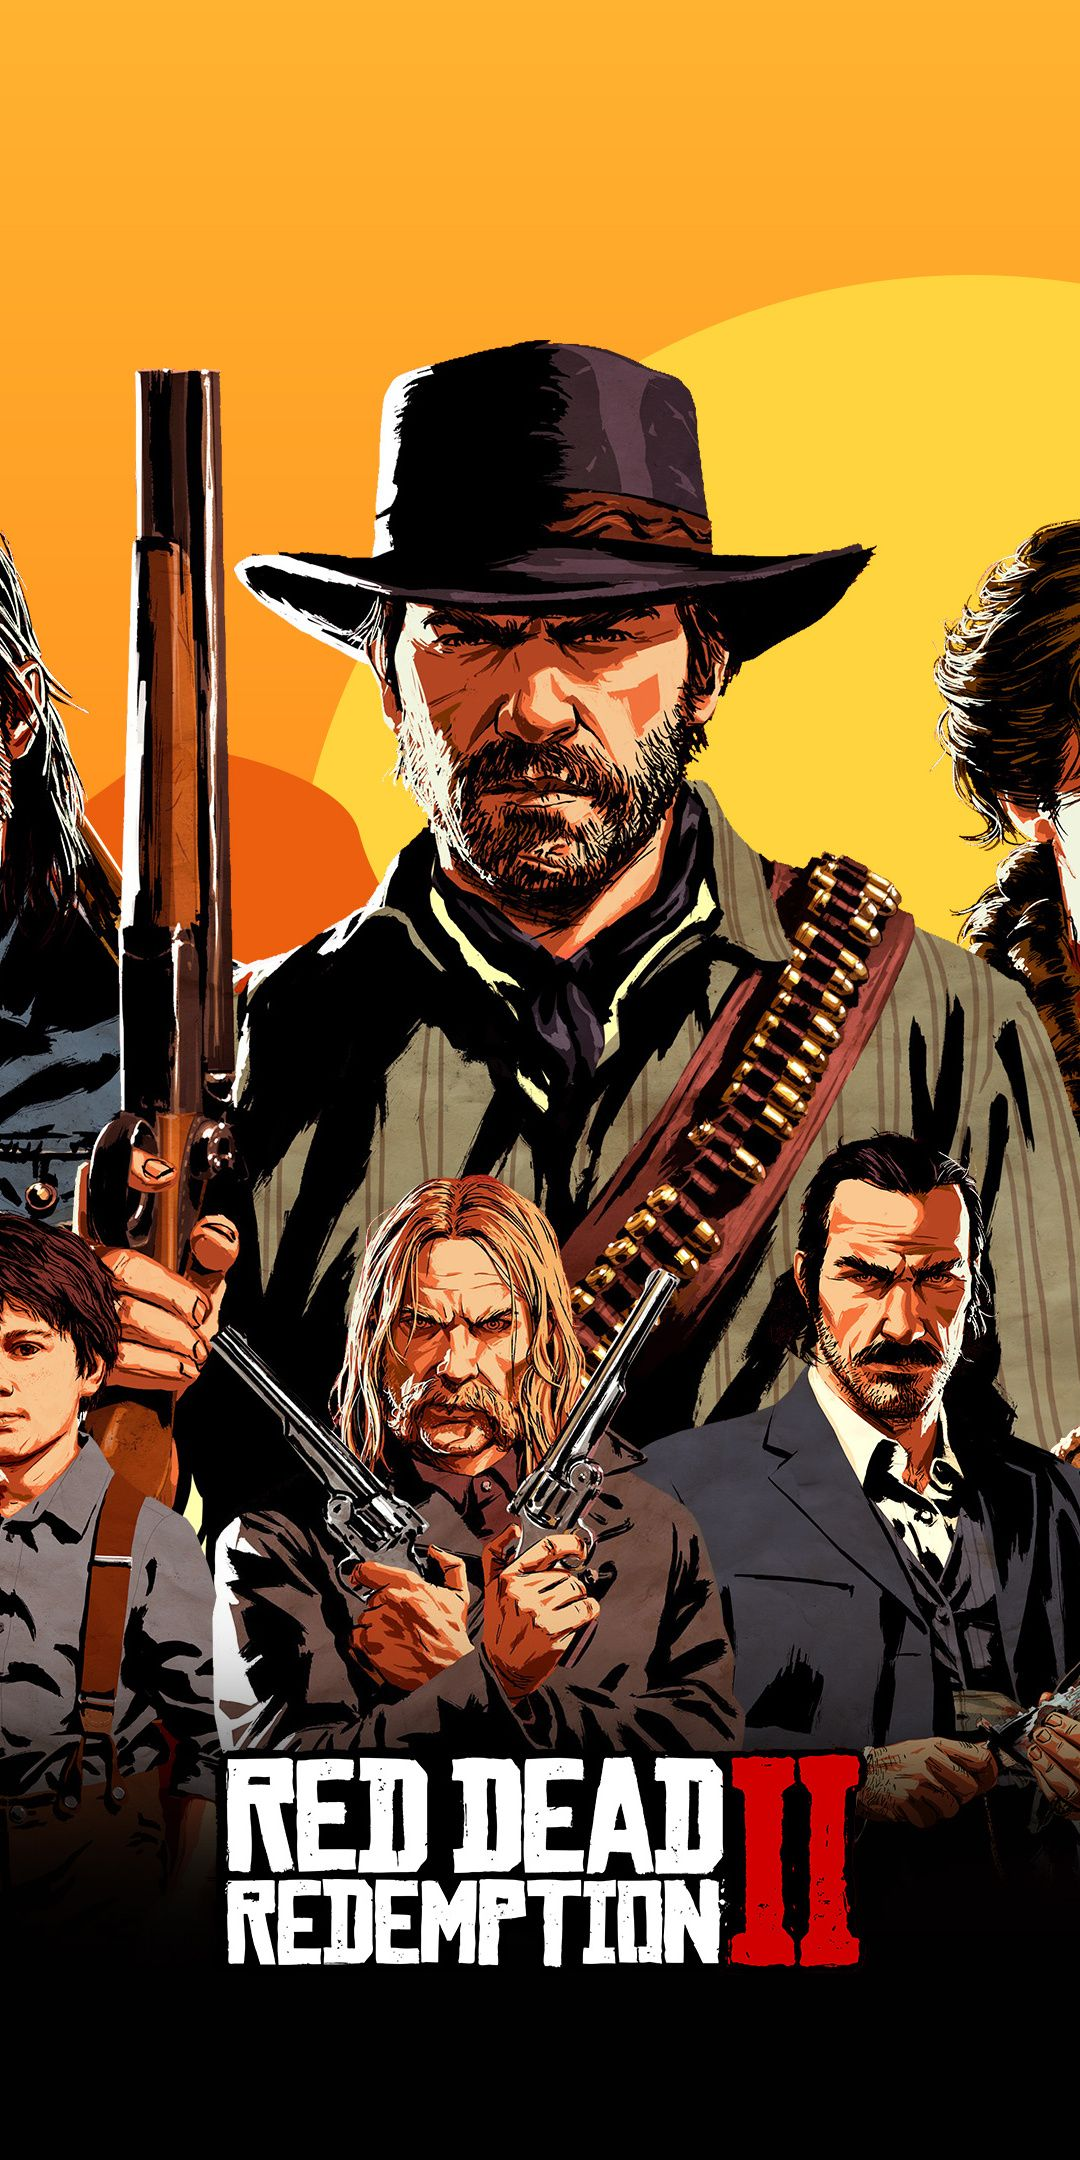 Game Video Game Red Dead Redemption 2 2018 Poster 1080x2160 Wallpaper Red Dead Redemption Artwork Red Dead Redemption Red Dead Redemption Ii